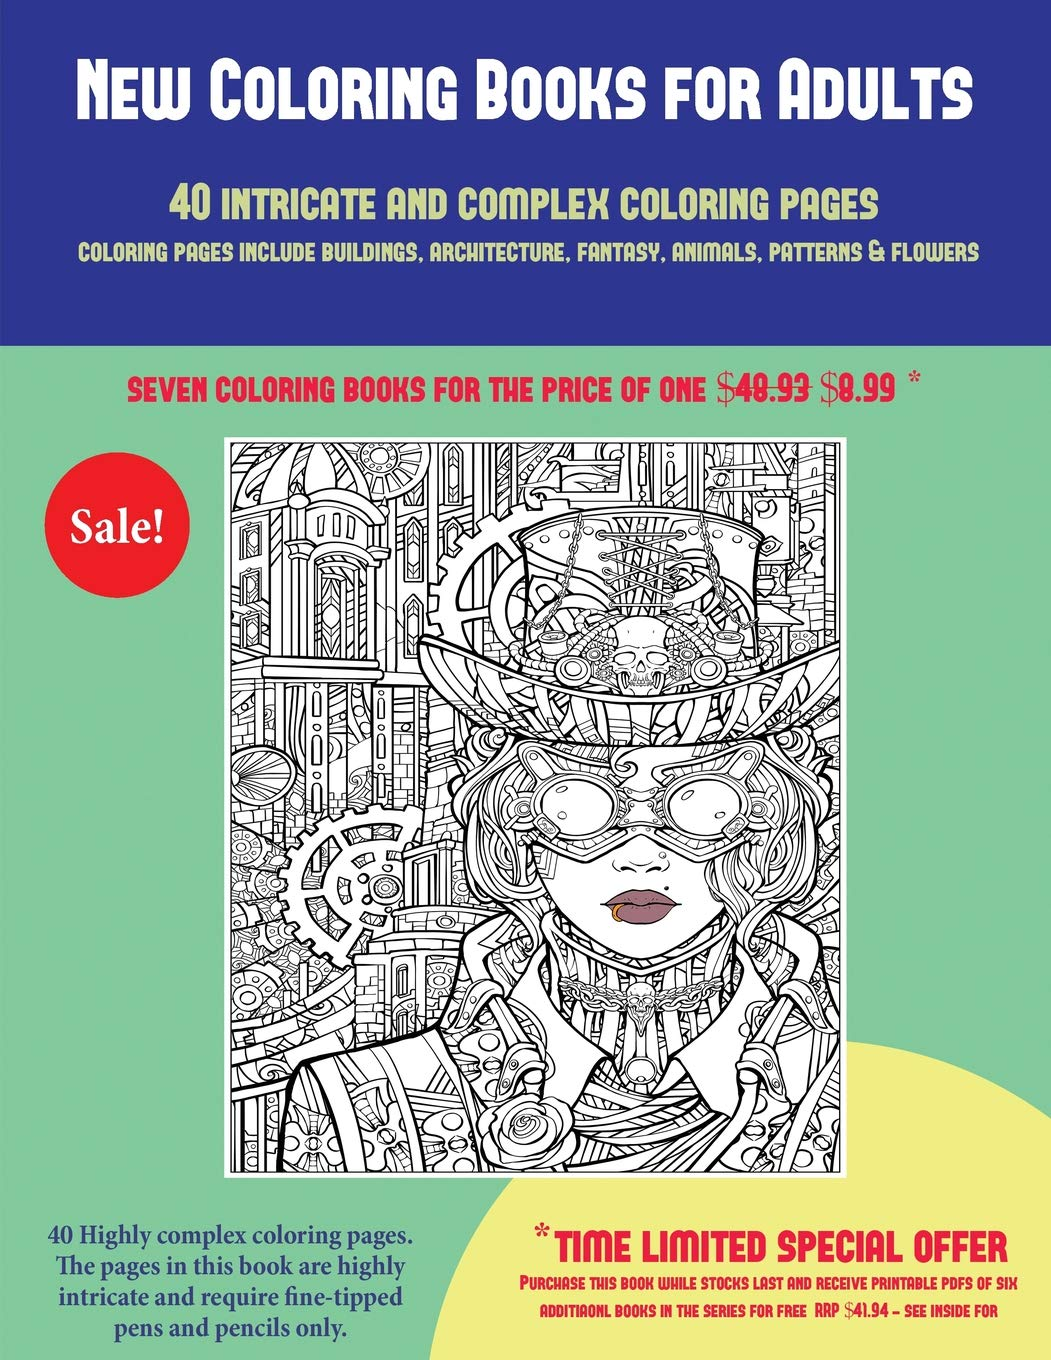 Buy New Coloring Books For Adults 40 Complex And Intricate Coloring Pages An Intricate And Complex Coloring Book That Requires Fine Tipped Pens And Fantasy Animals Patterns Flowers Book Online At